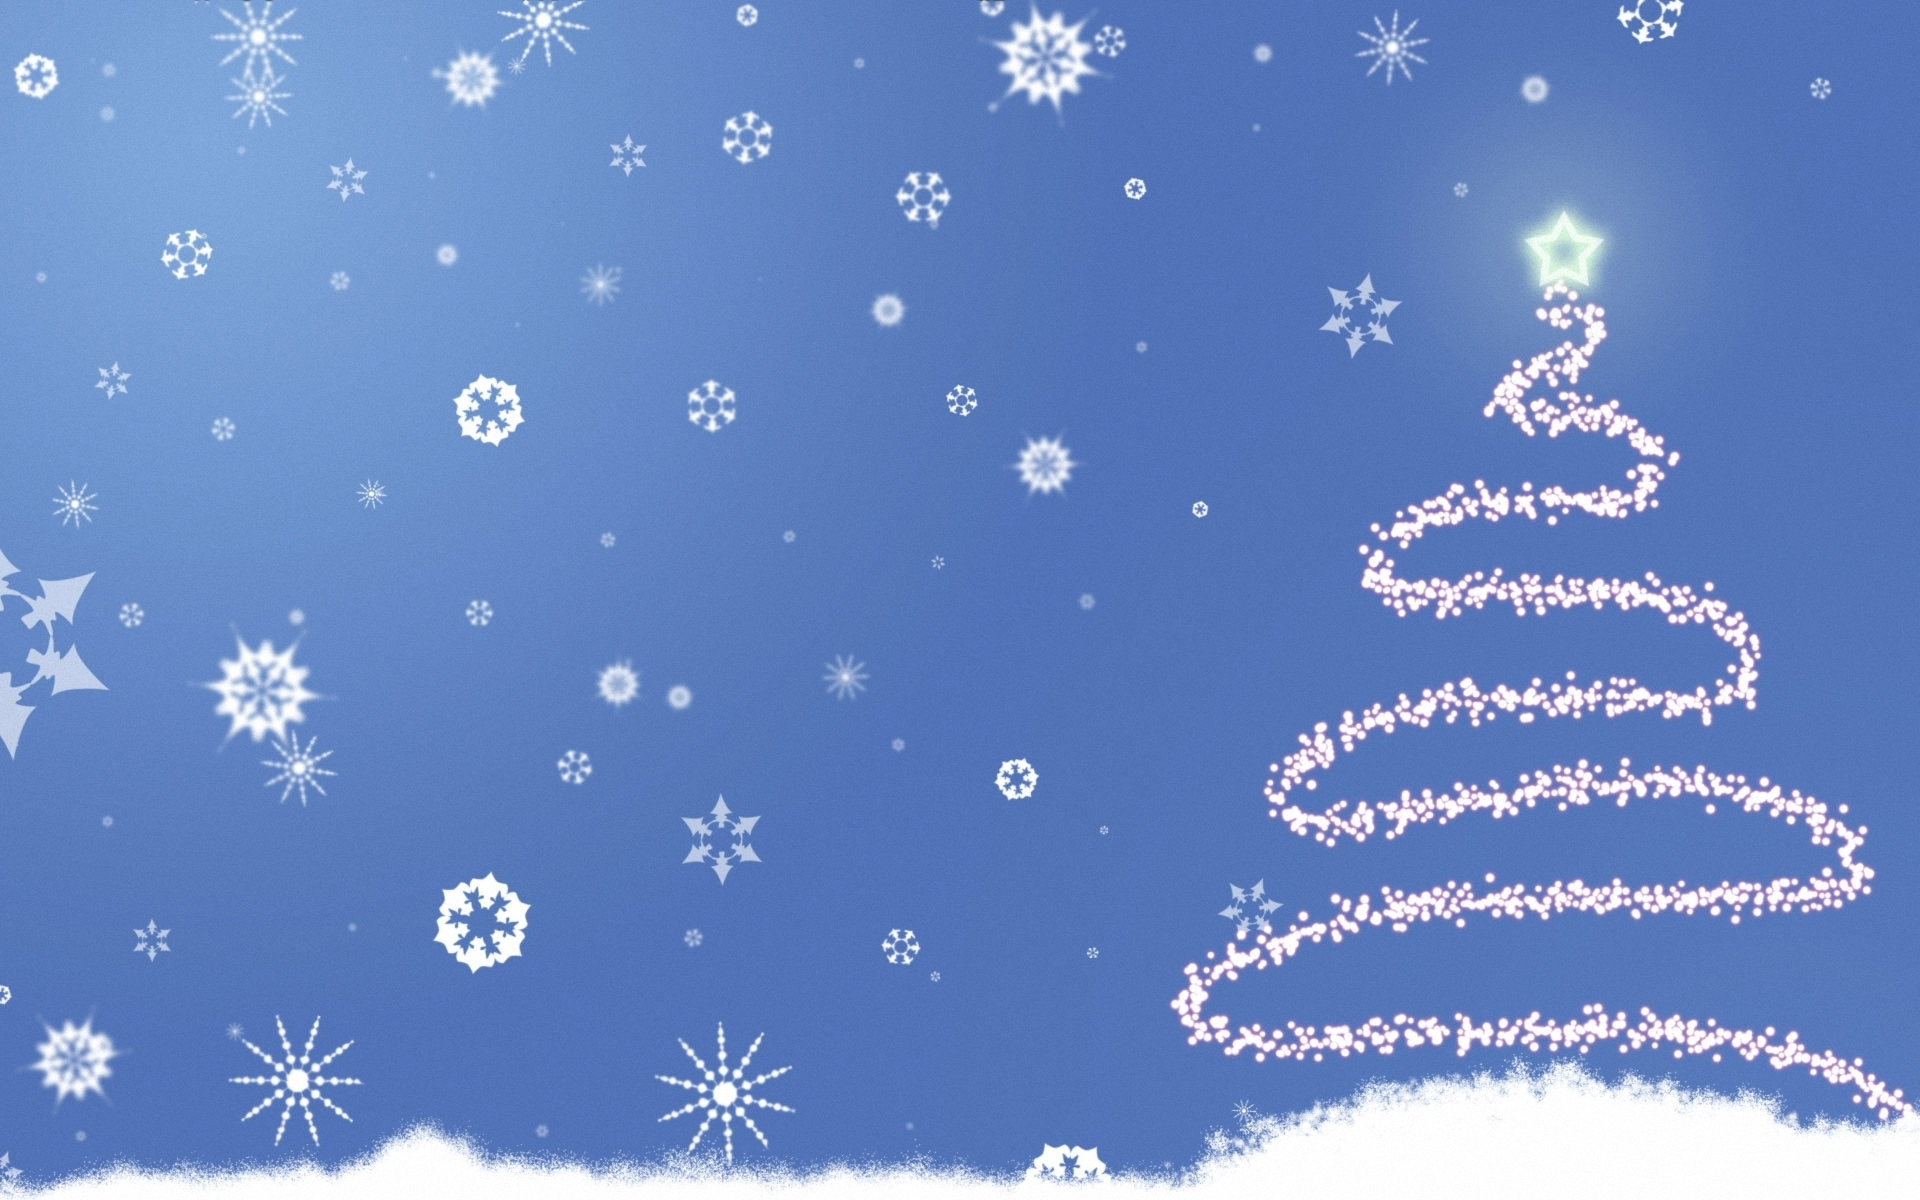 Christmas wallpaper - Christmas Wallpaper (22227612) - Fanpop